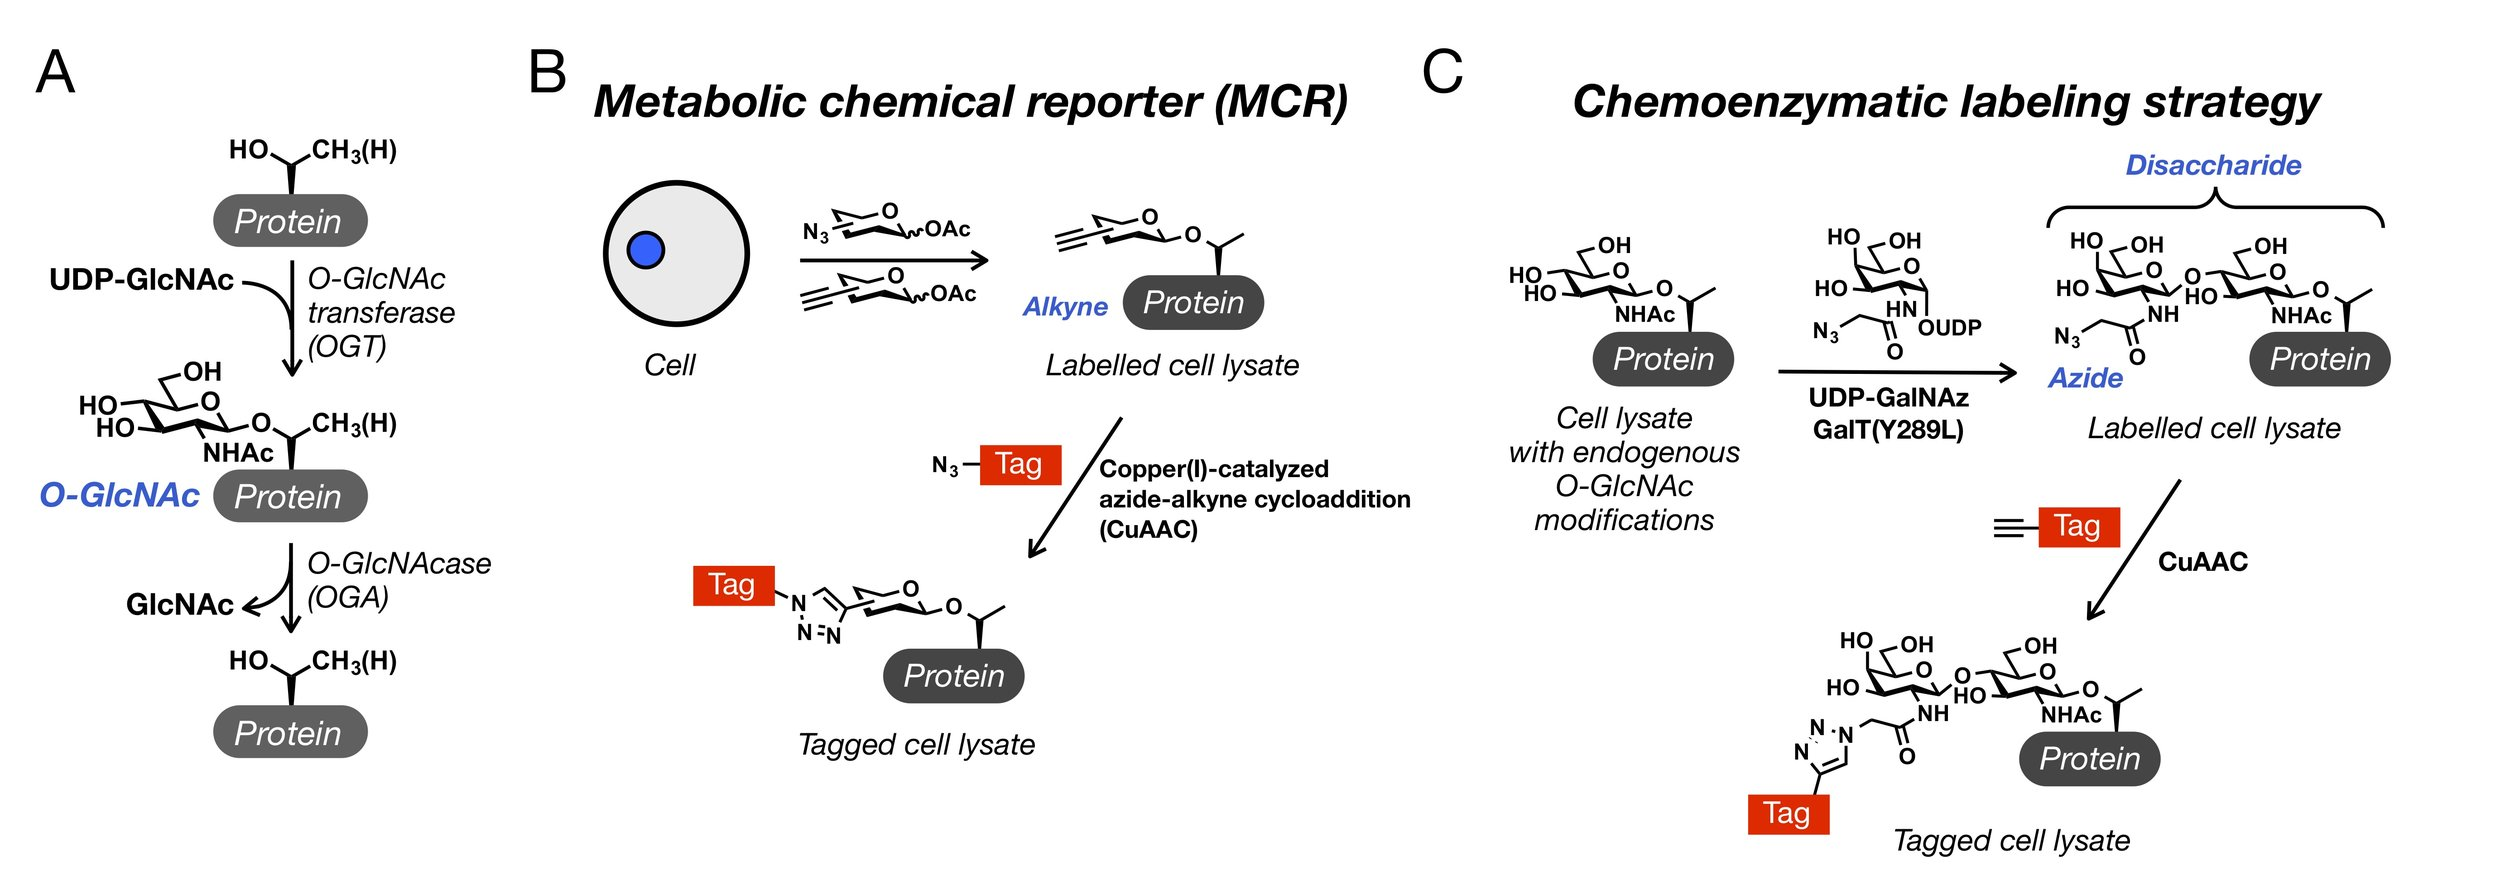 Figure 1. O-GlcNAc and our chemical strategies to study it.  (A) O-GlcNAc is a dynamic posttranslational modification of serine and threonine residues of many intracellular proteins. (B) Living cells will metabolize a variety of metabolic chemical reporters (MCRs) and add them onto glycoproteins in-place of natural monosaccharides. The azide or alkyne moieties can then be reacted with tags using bioorthogonal chemistries. (C) Endogenous O-GlcNAc modifications can be detected by  ex vivo  enzymatic modification followed by bioorthogonal reaction with tags, termed chemoenzymatic labeling.